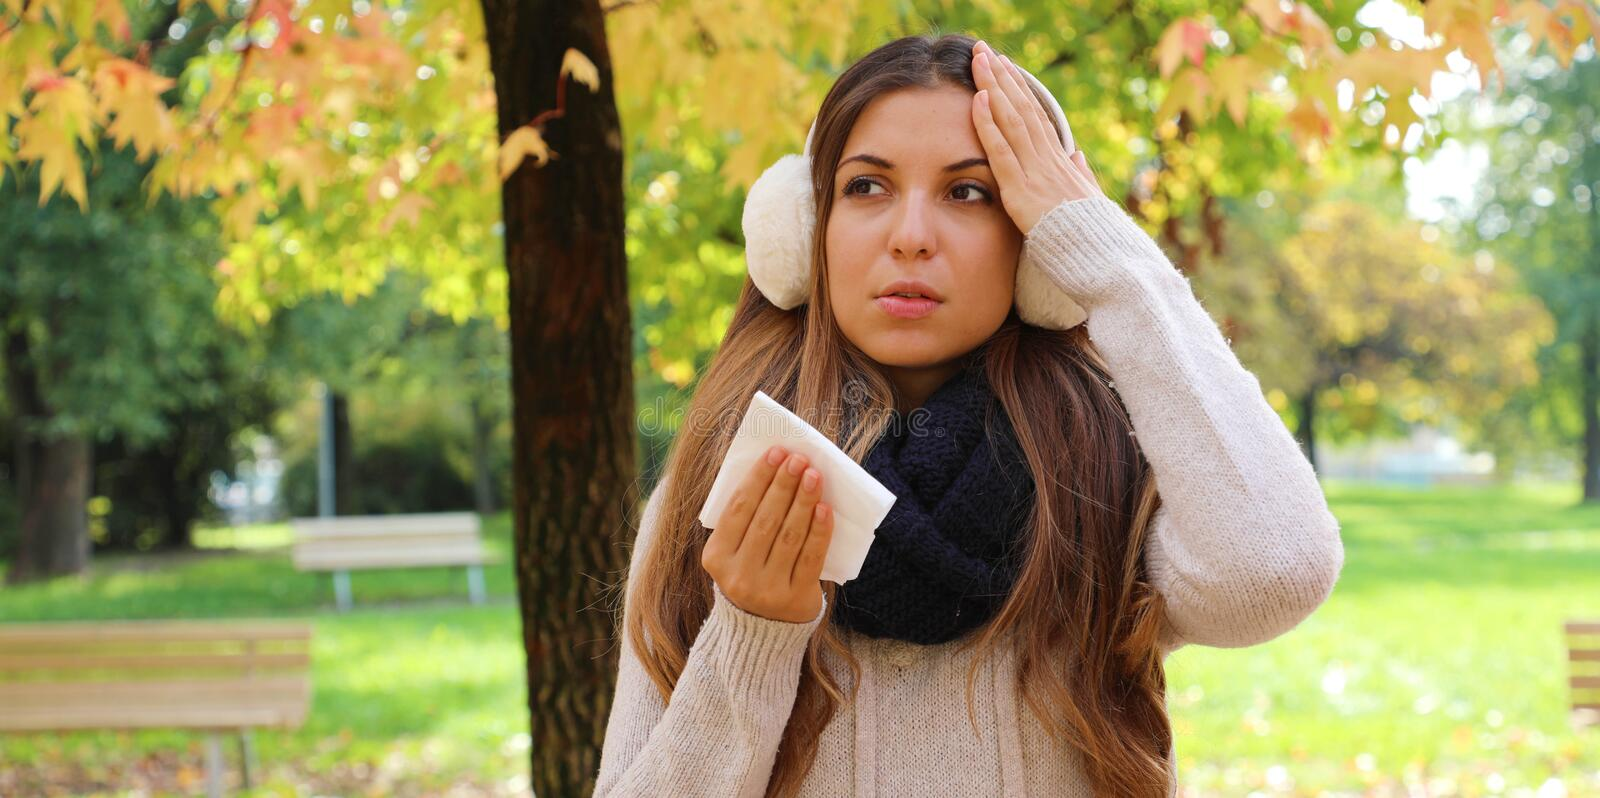 Winter flu banner view. Young woman suffering flu headache cold fever migraine holding tissue outdoors stock photos